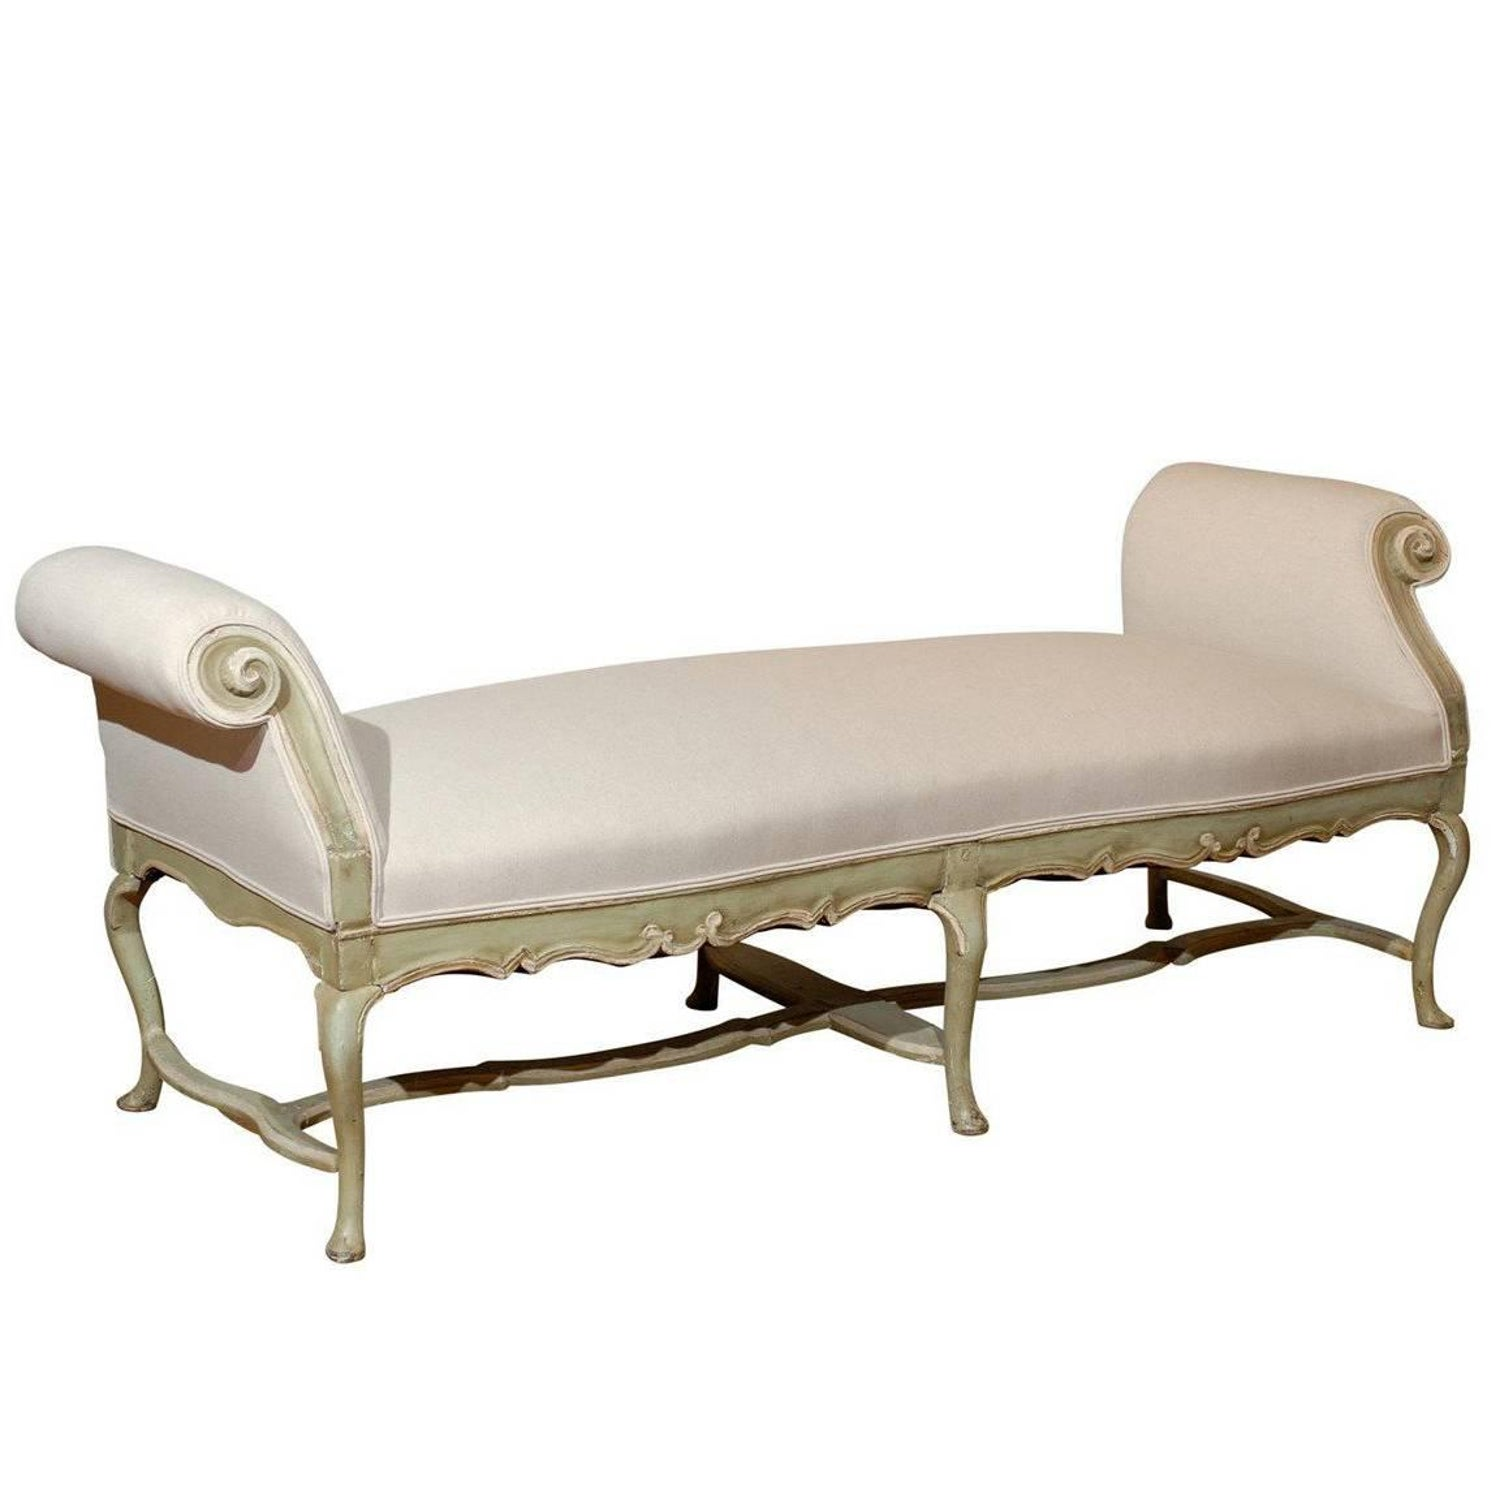 Chaise longue definition 28 images define chaise for Chaise definition